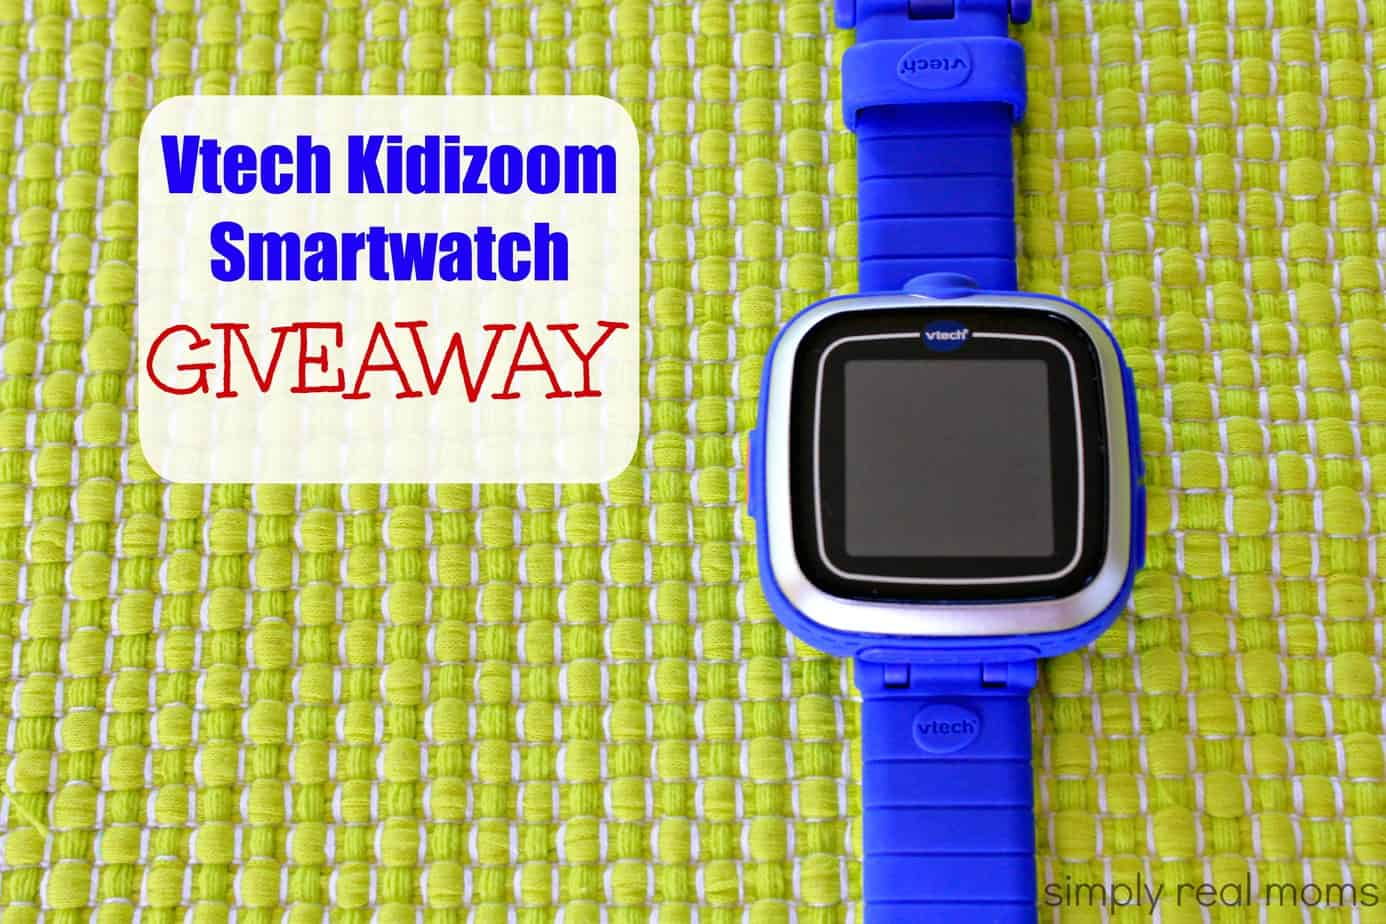 Vtech Kidizoom Smartwatch Giveaway 1